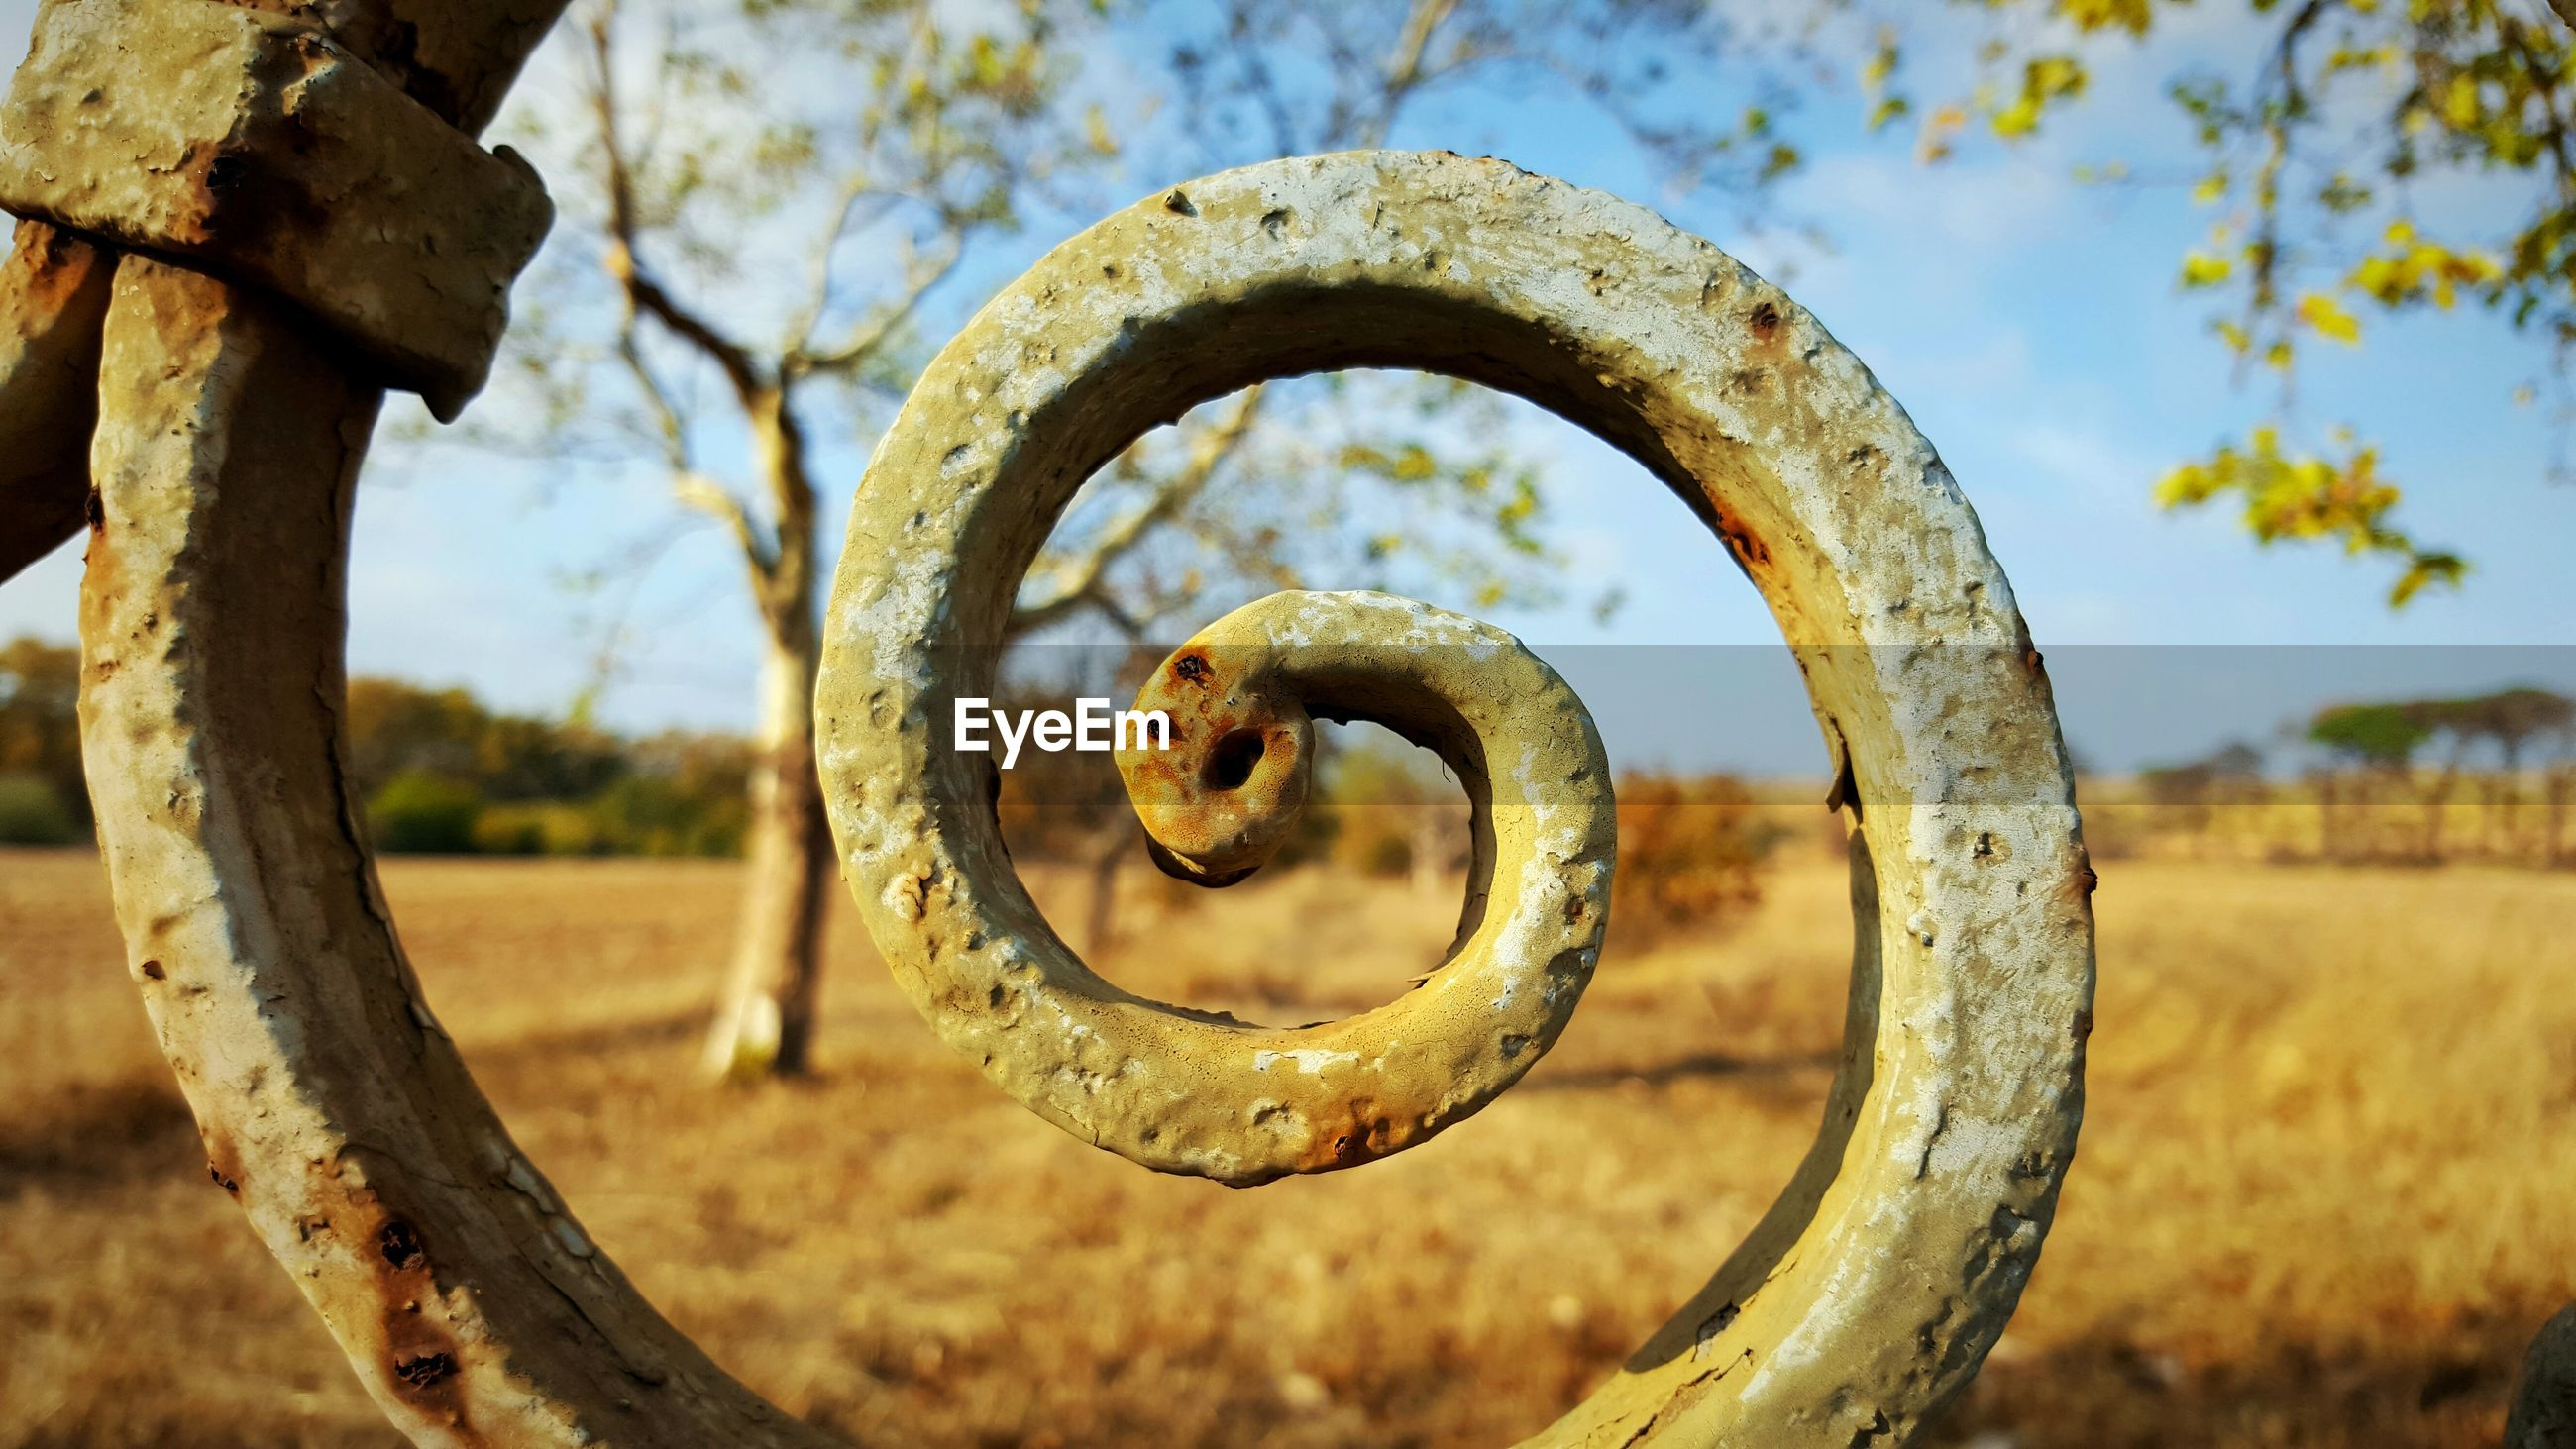 CLOSE-UP VIEW OF RUSTY WHEEL